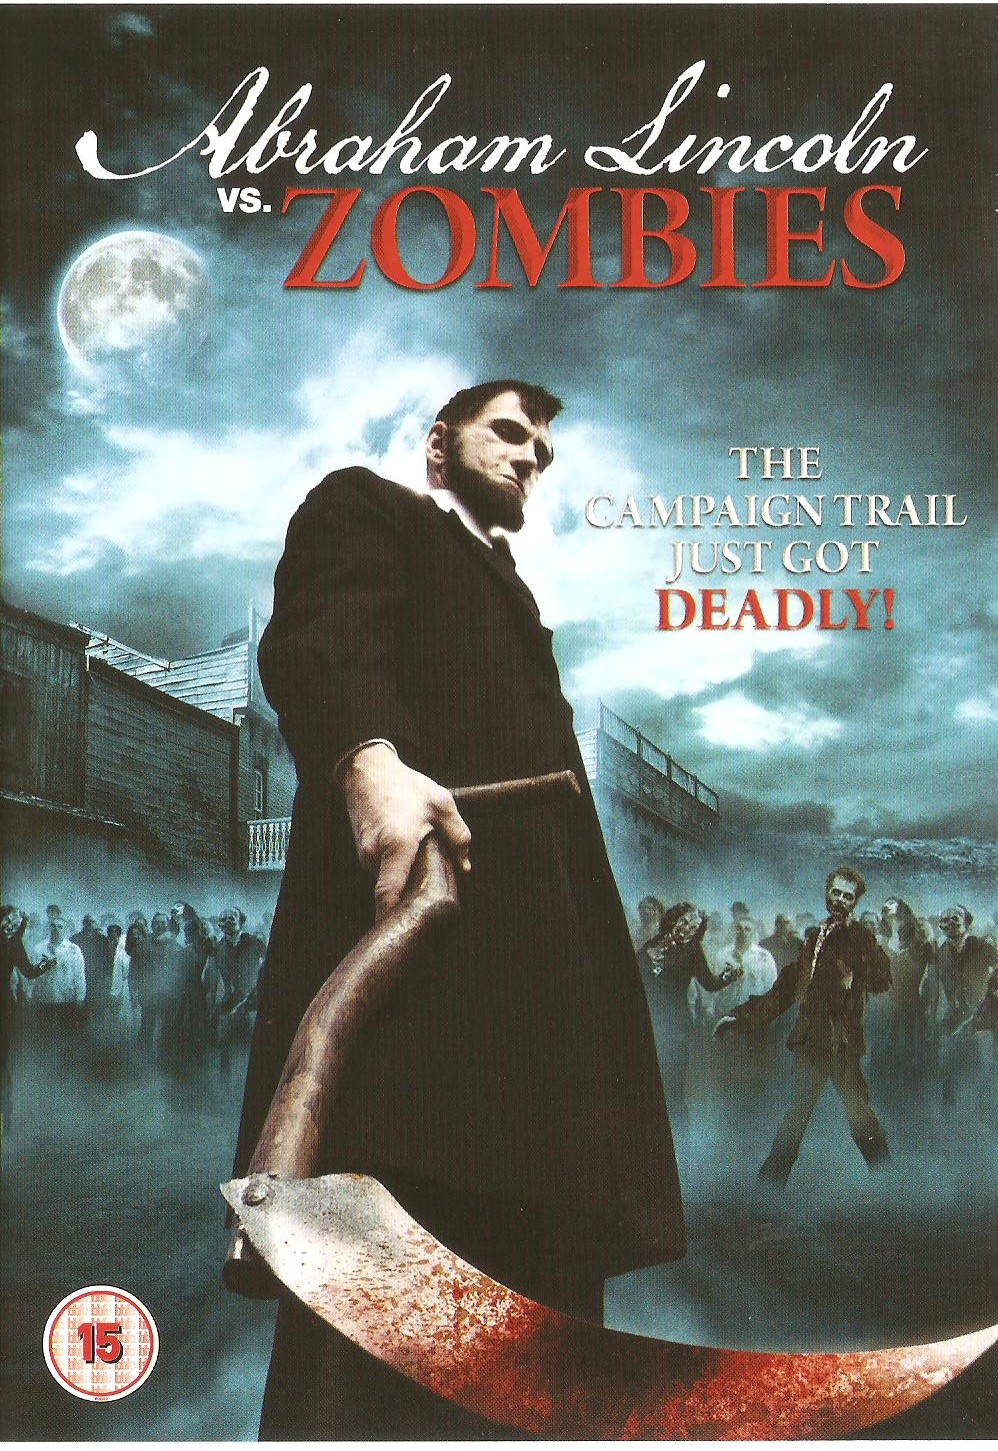 http://pete975.files.wordpress.com/2012/08/abe-lincoln-vs-zombie-dvd-001.jpg